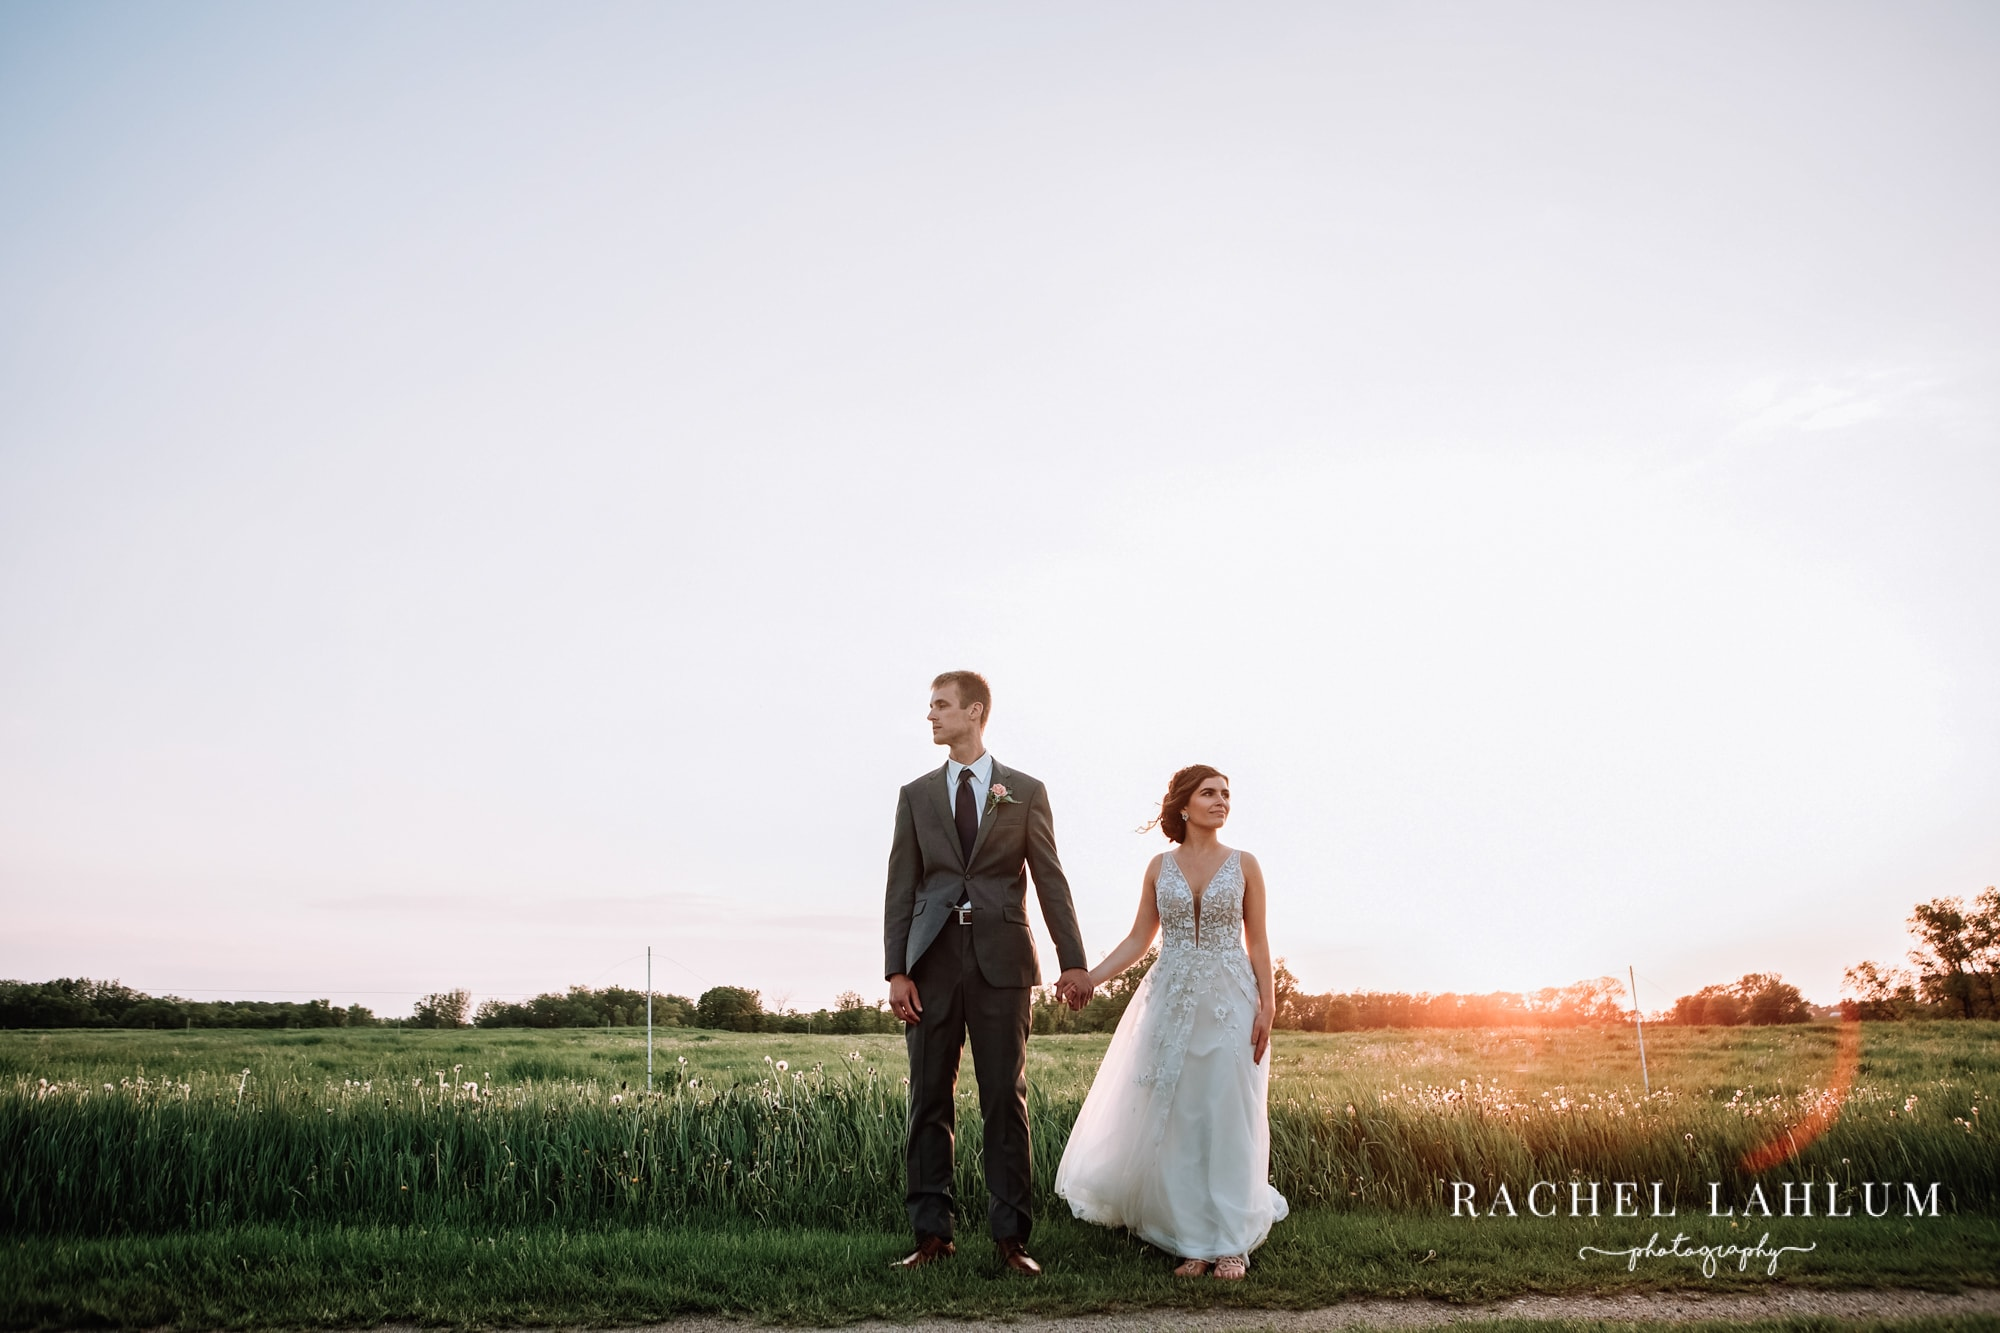 Portrait of bride and groom in front of sunset over pasture at The Cottage Farmhouse wedding venue in Glencoe, Minnesota.